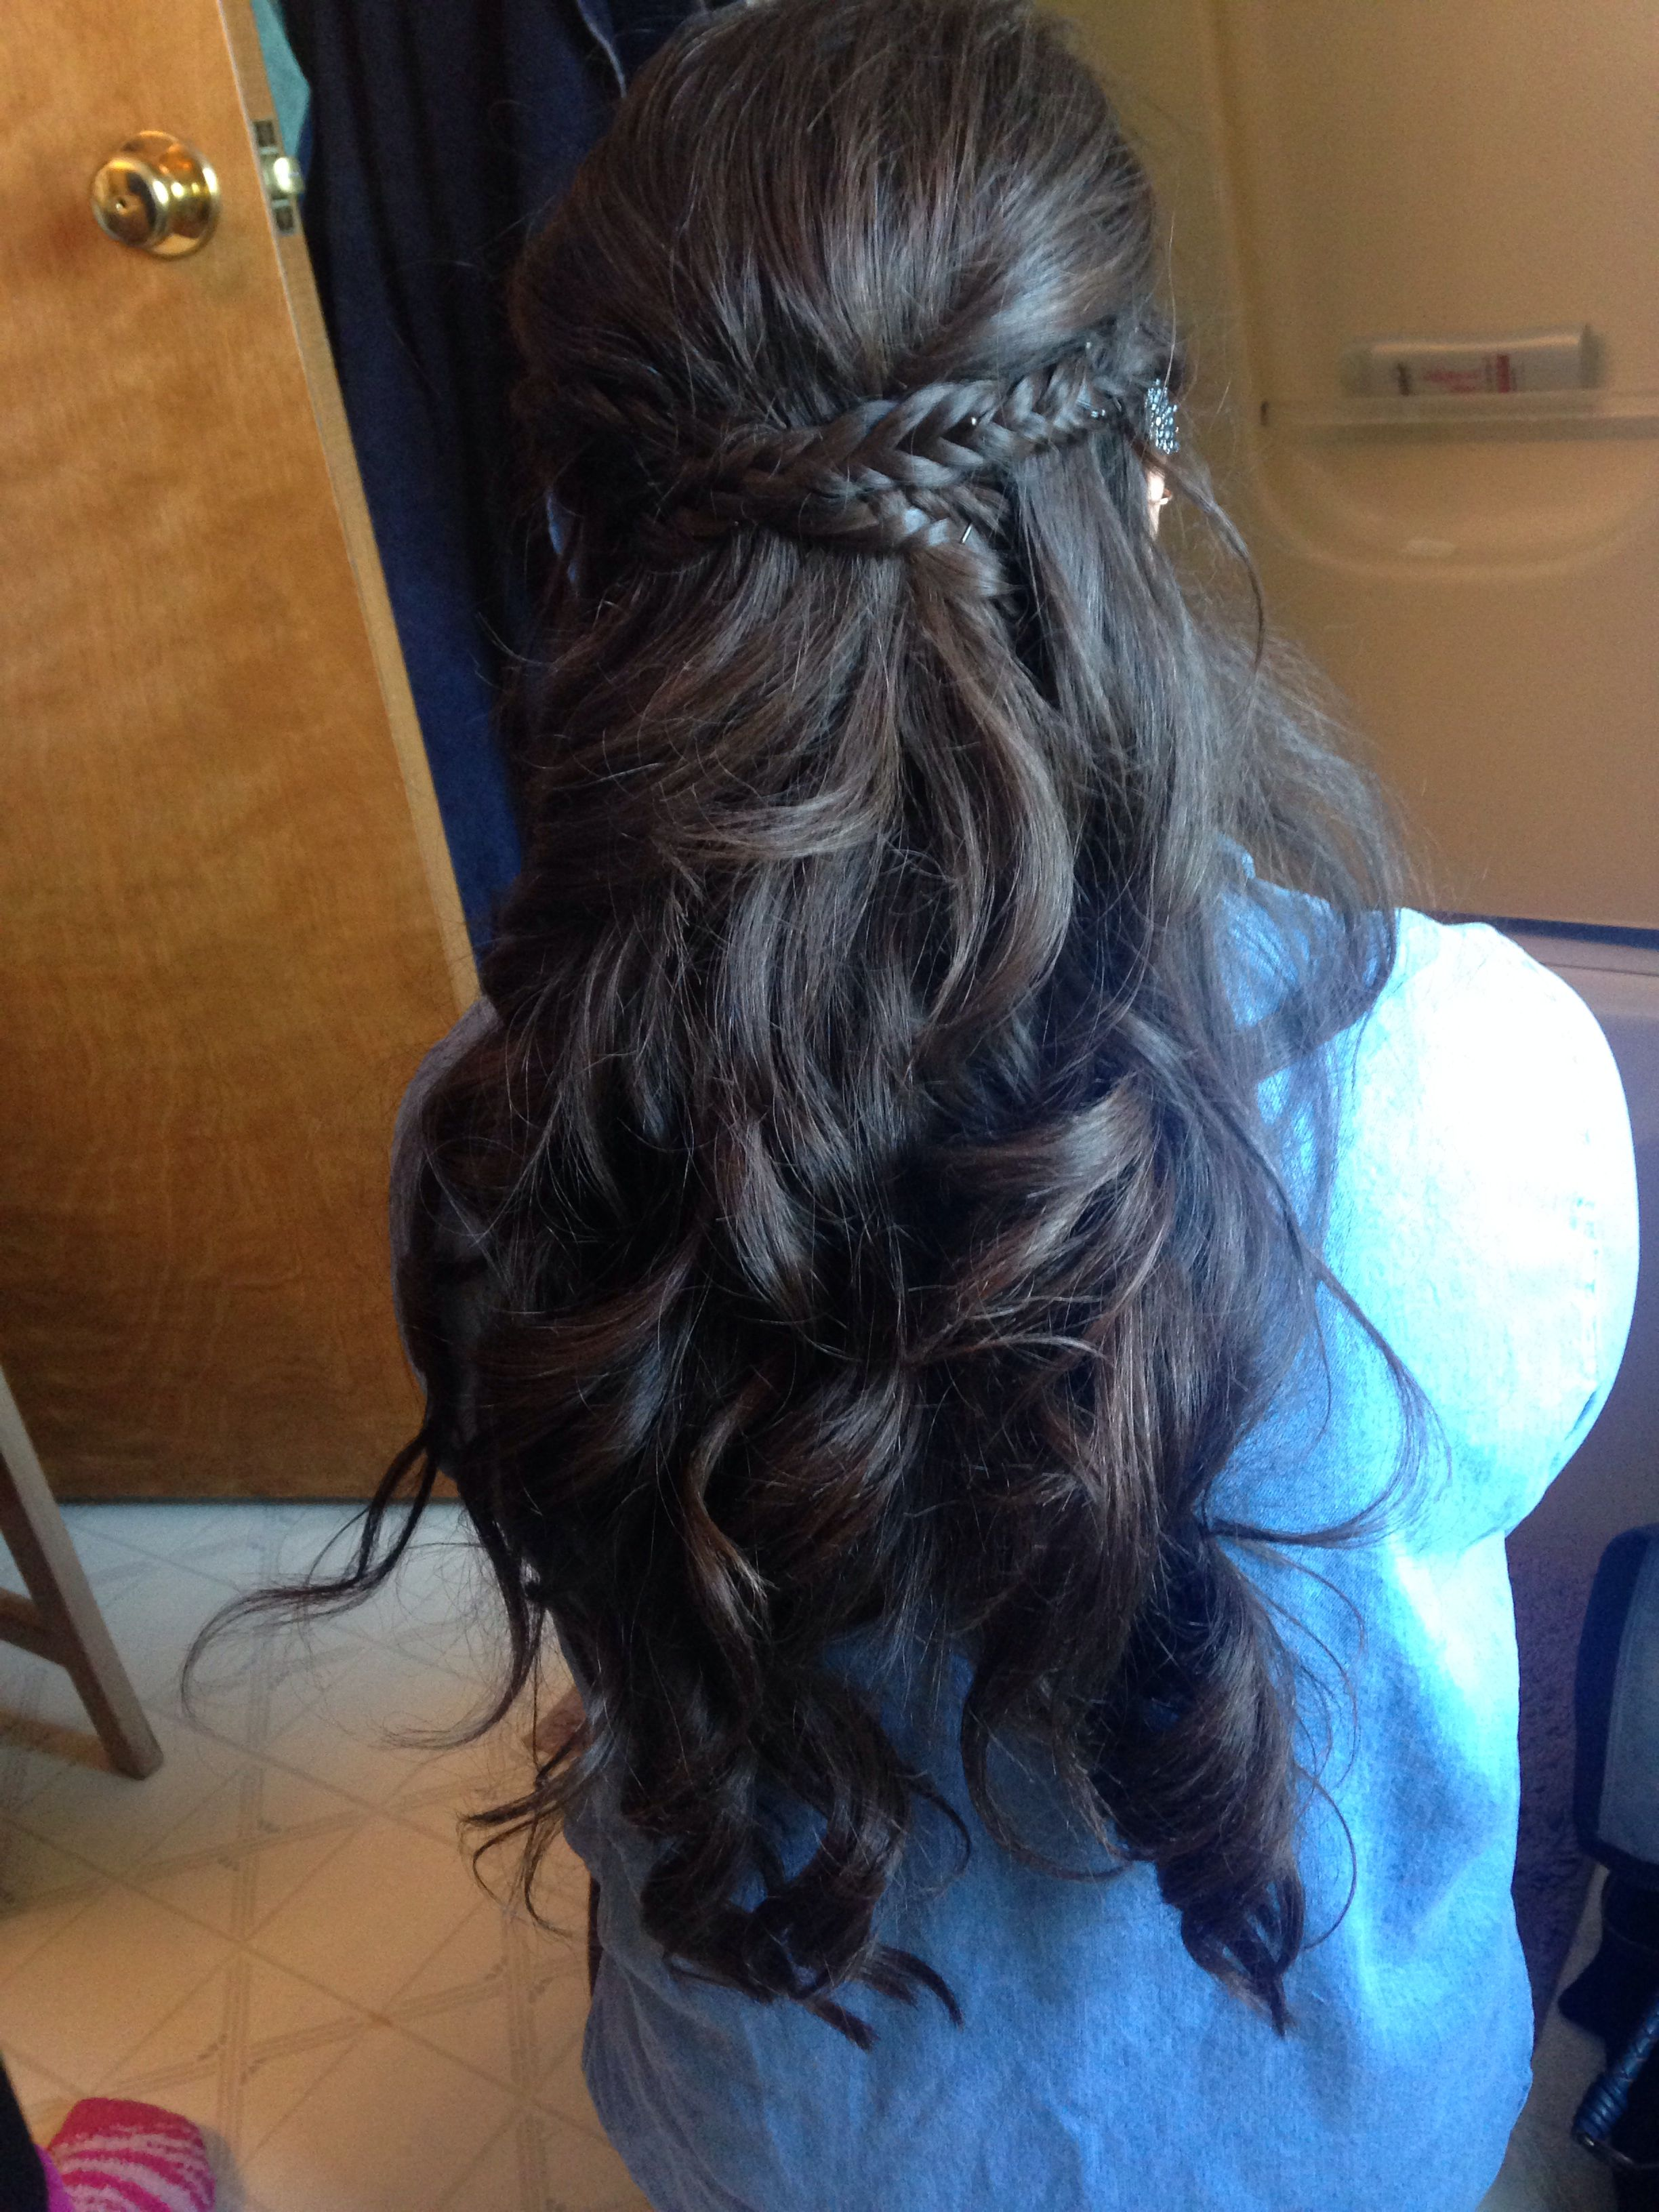 Prom/homecoming Hair! Curled, Half Up/half Down With